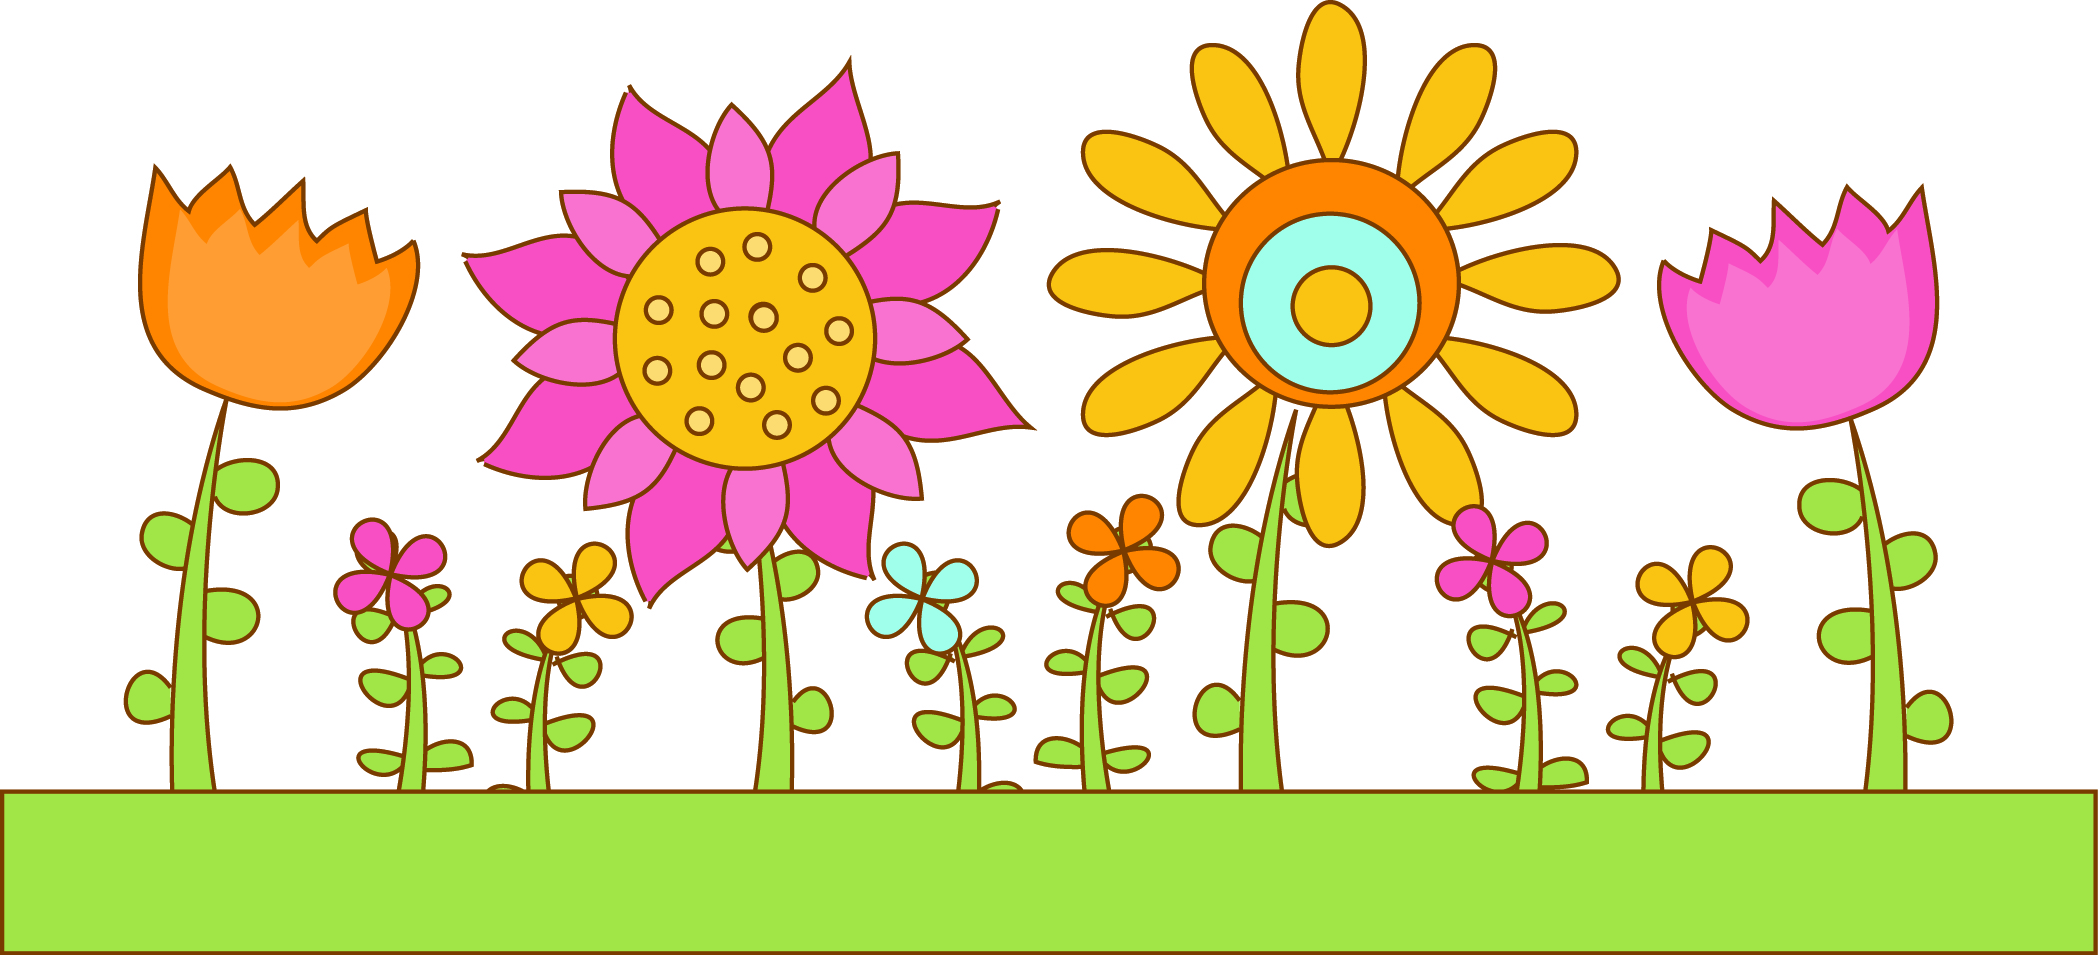 Flower bed clip art.